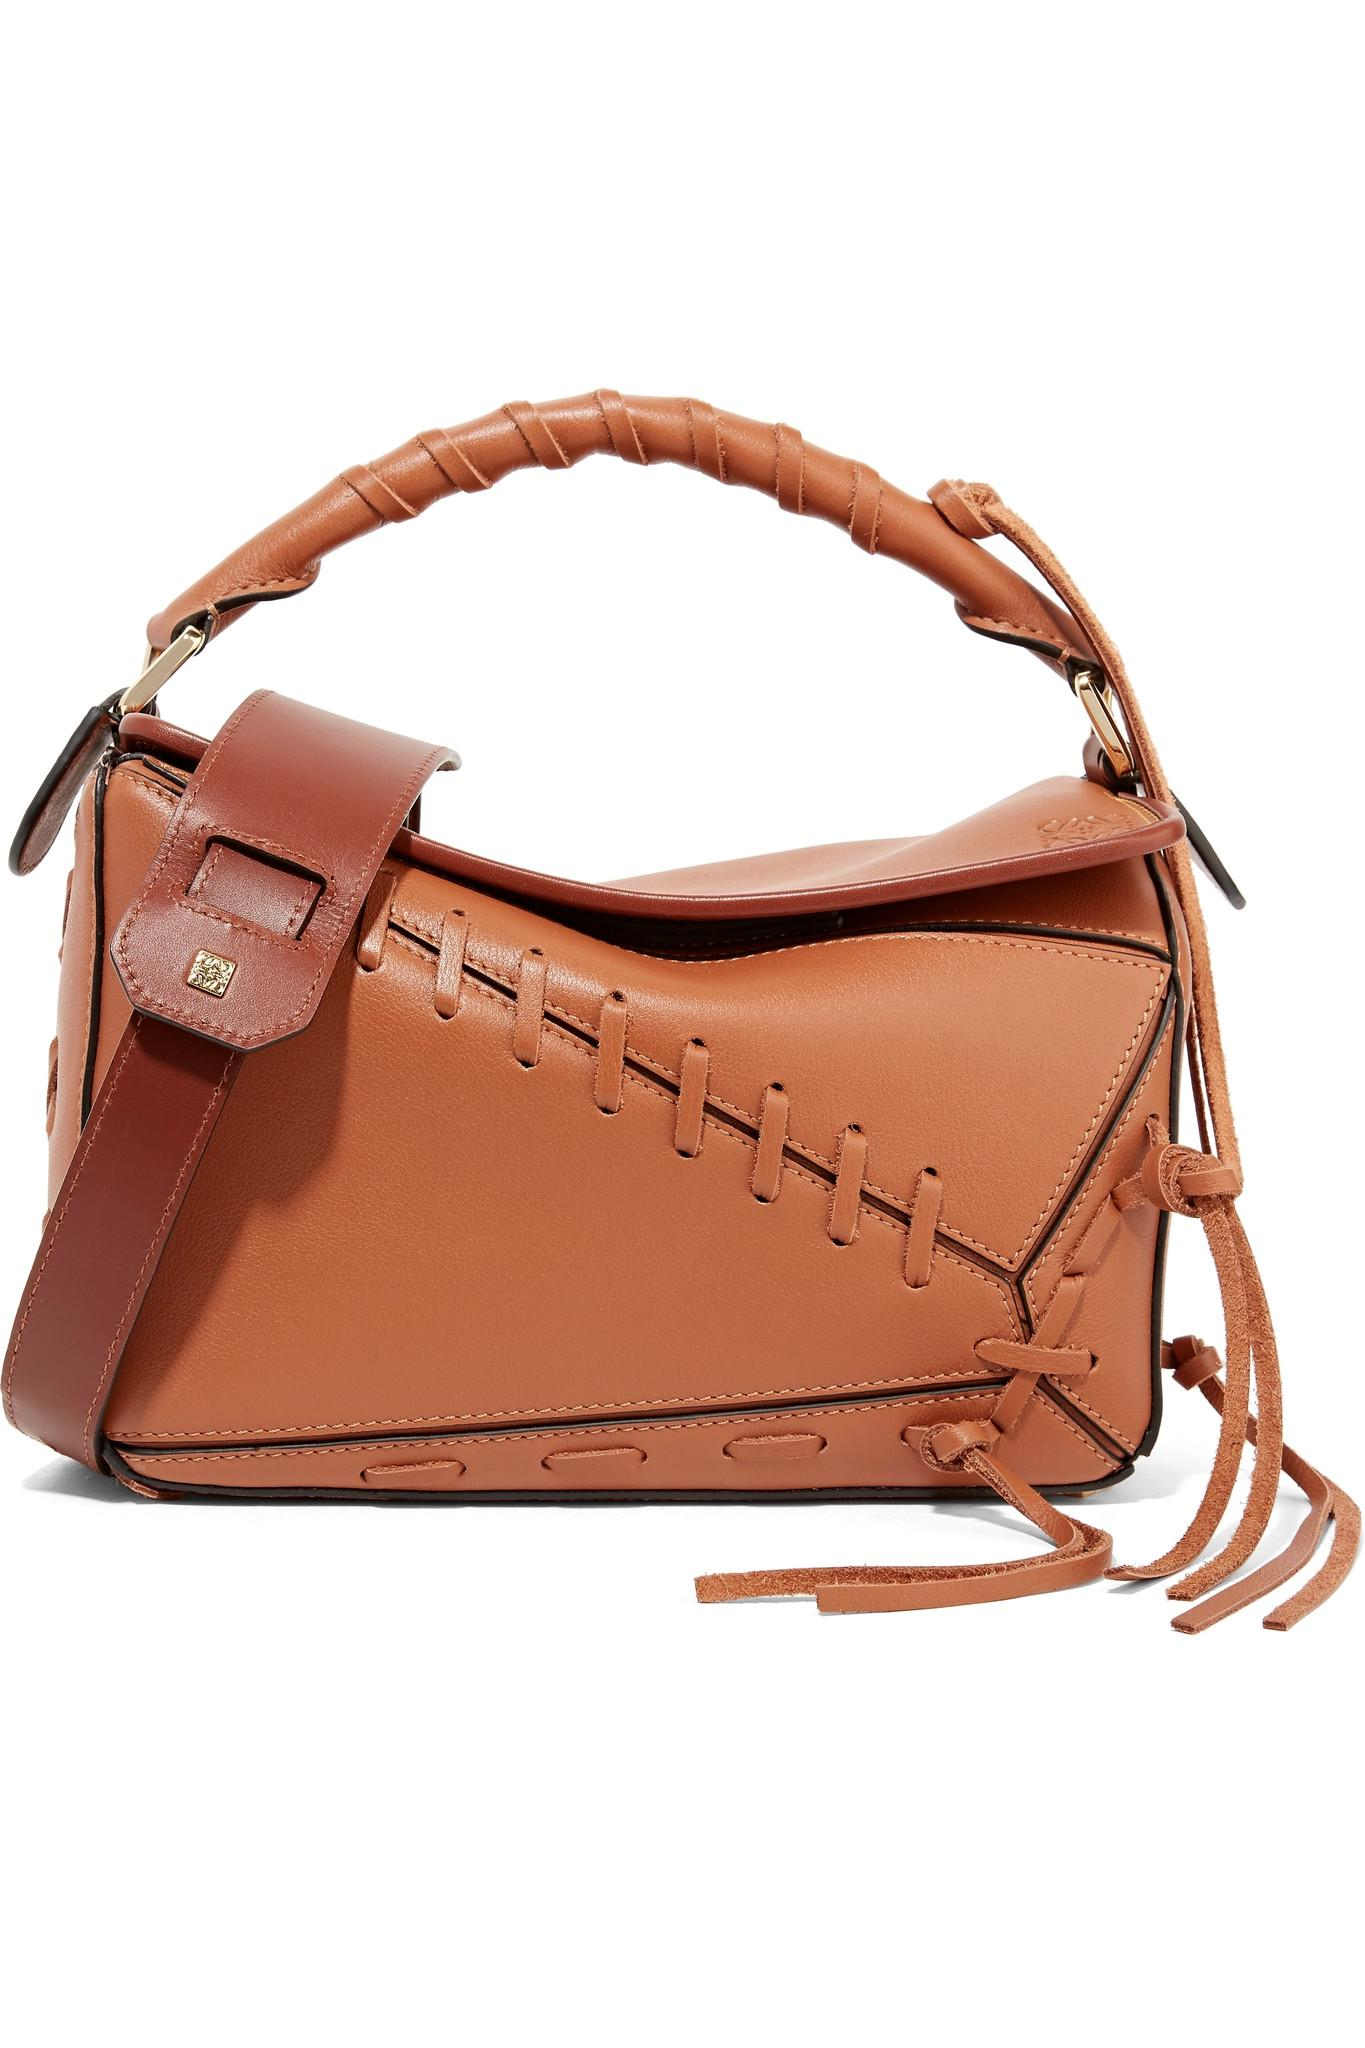 a79081686c07 Lyst - Loewe Puzzle Small Whipstitched Textured-leather Shoulder Bag ...